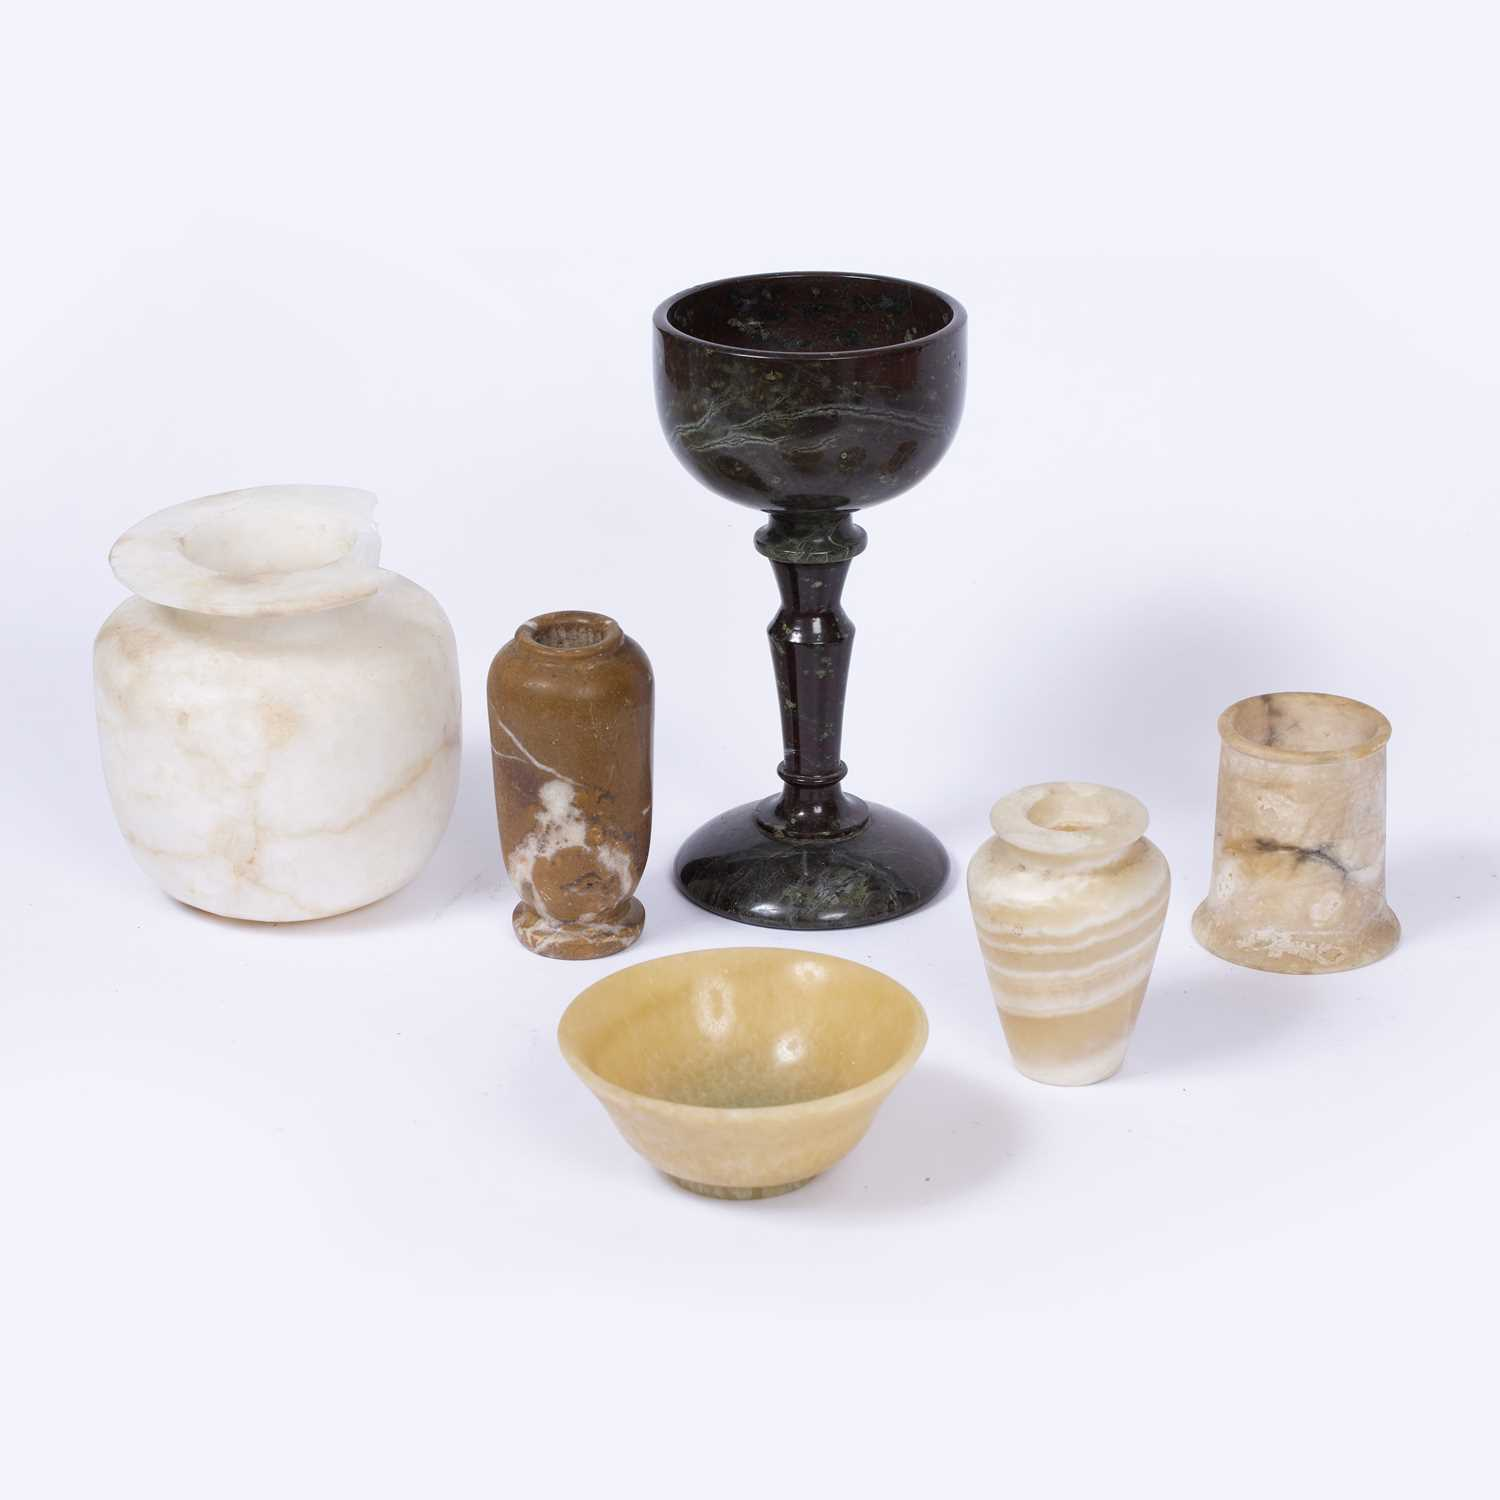 A variegated marble goblet with tapering stem, 21.5cm high; a translucent hardstone bowl, 12cm;